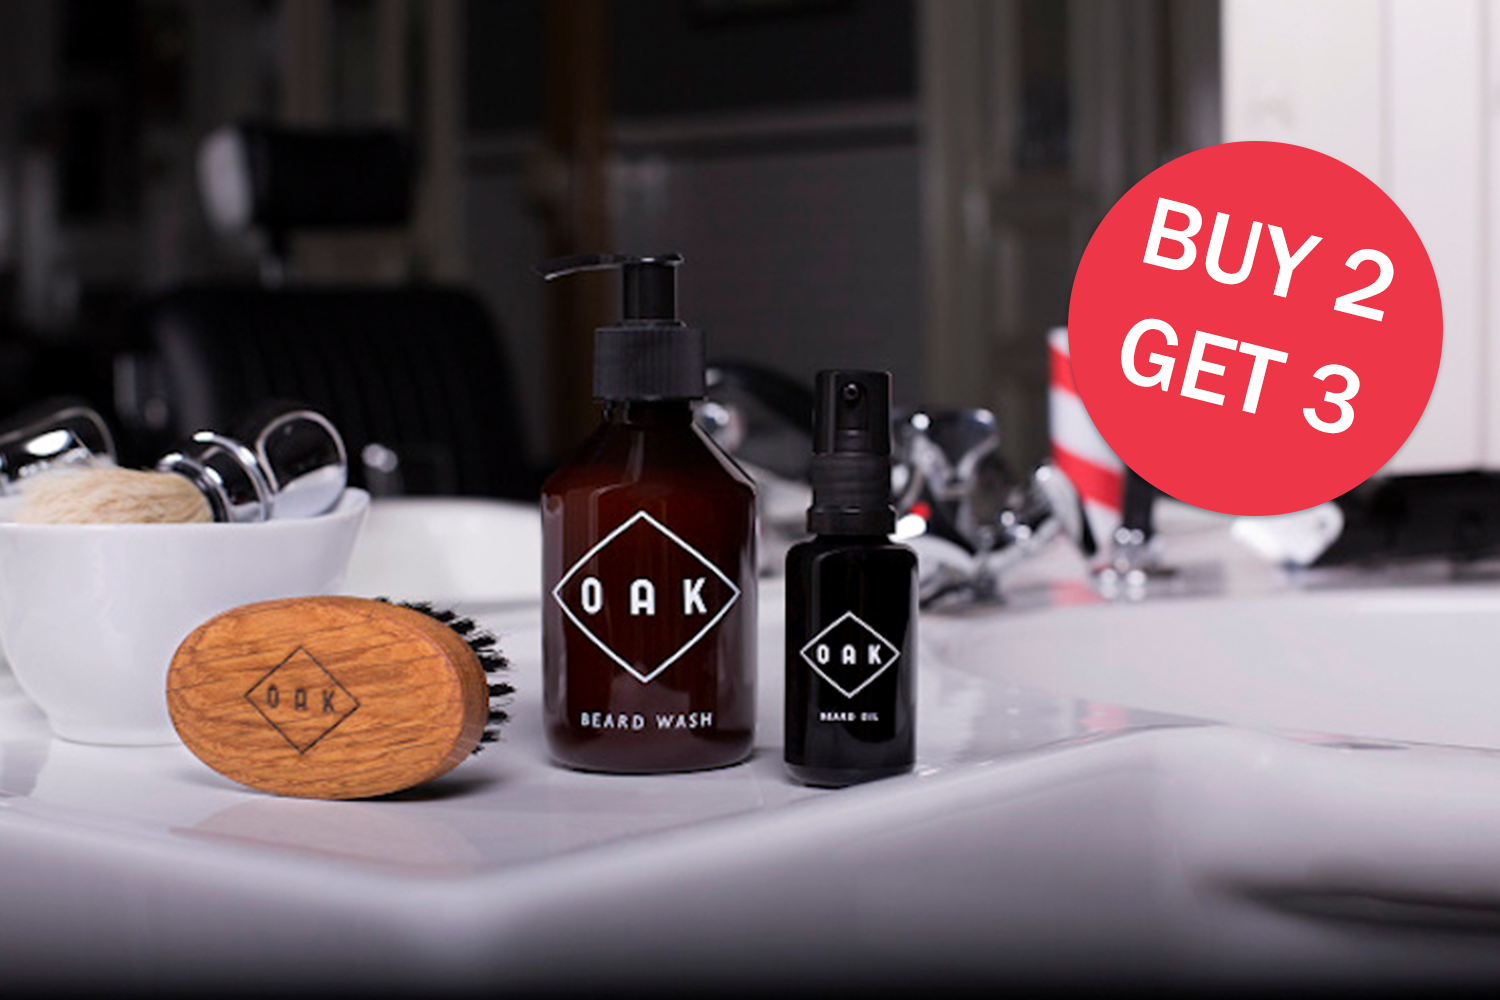 OAK 3 for 2! - Buy 2 OAK products and get 1 FREE**3rd product is to be the same or lesser value. Type the name of 3rd product in Additional Information box during checkout.Offer available until 31st October and while stock lasts.